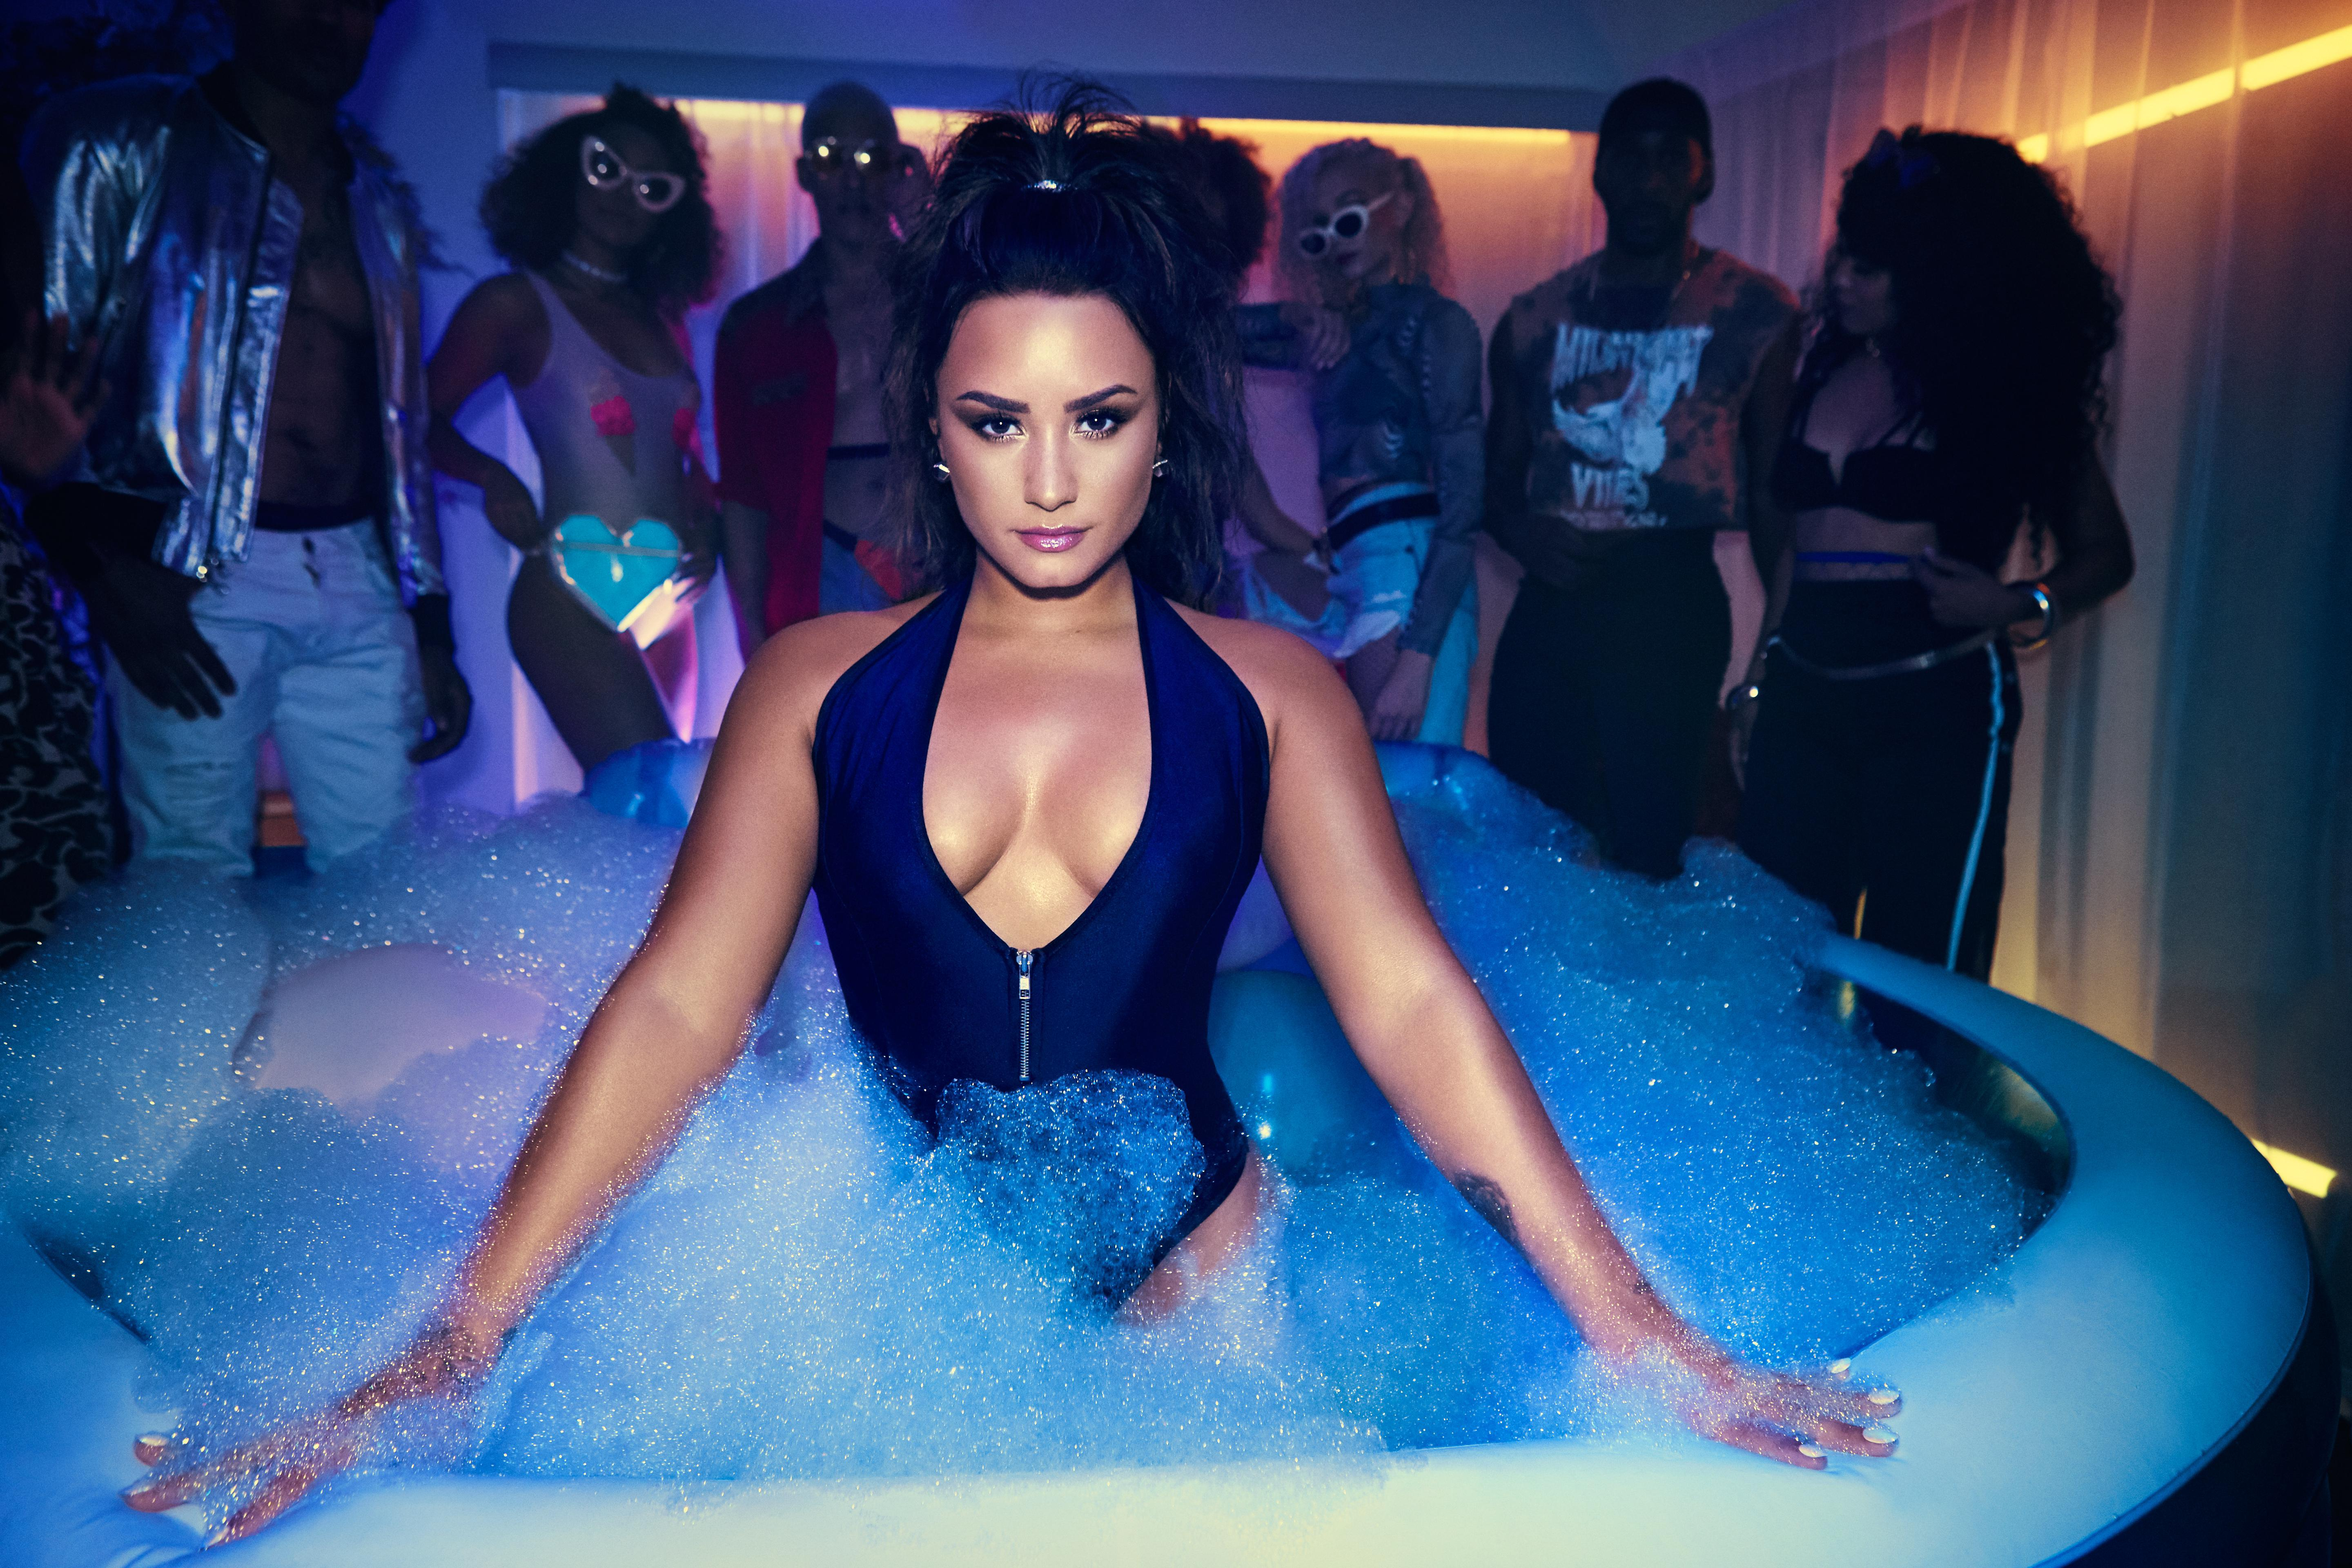 demi lovato 4k 2017, hd celebrities, 4k wallpapers, images